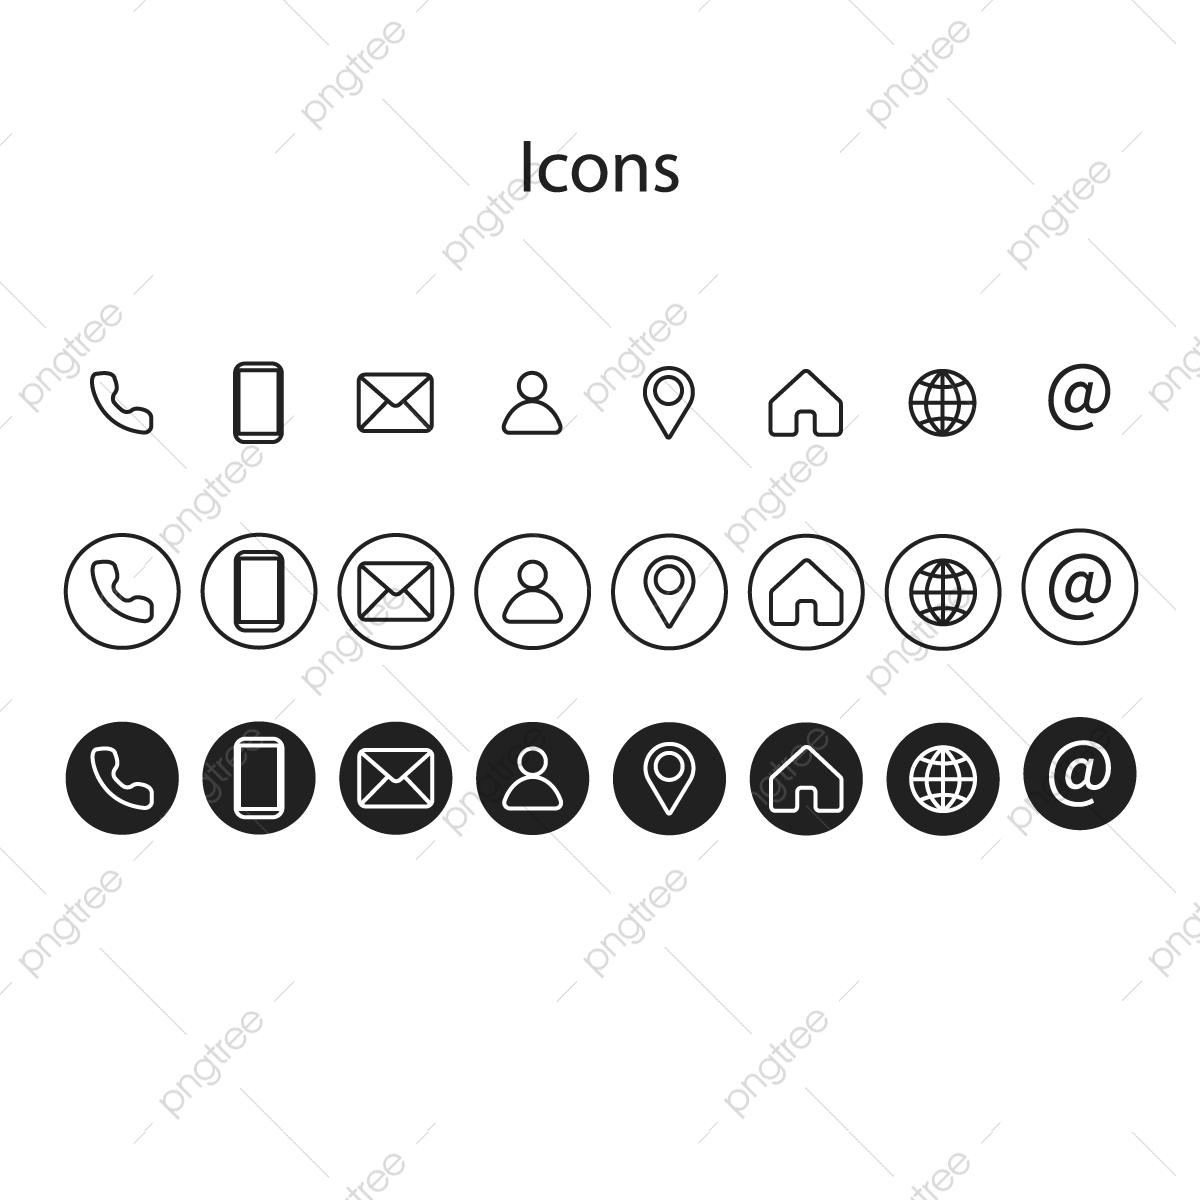 Contact Icon Png Images Vector And Psd Files Free Download On Pngtree